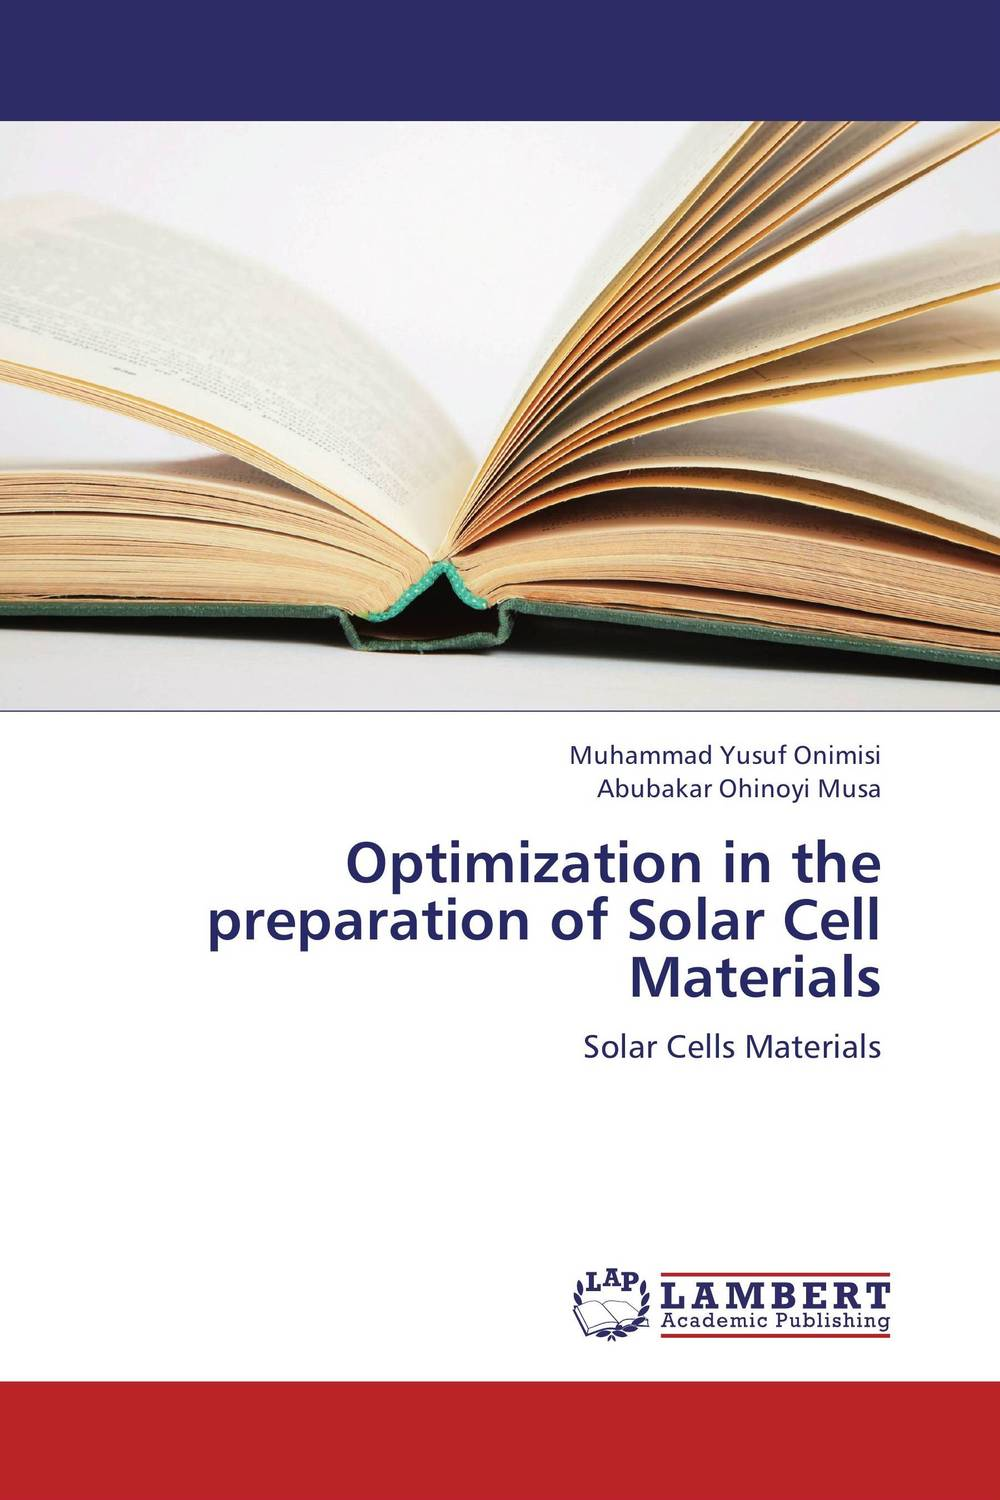 Optimization in the preparation of Solar Cell Materials swapna nair and m r anantharaman investigation on the nanomagnetic materials and ferrofluids